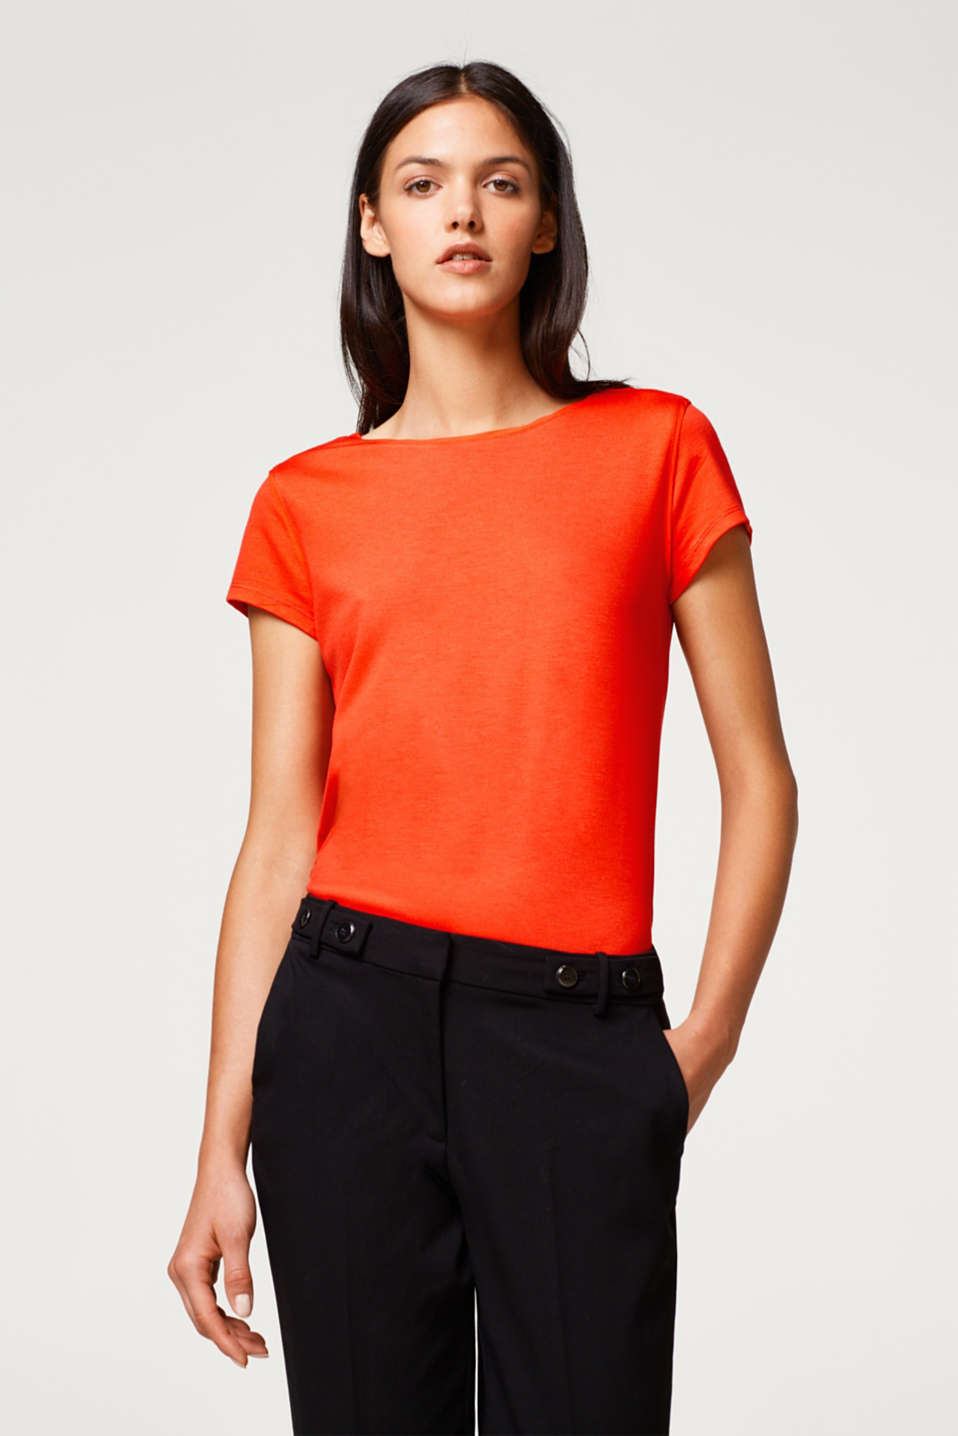 Esprit - Stretch jersey top with chiffon details